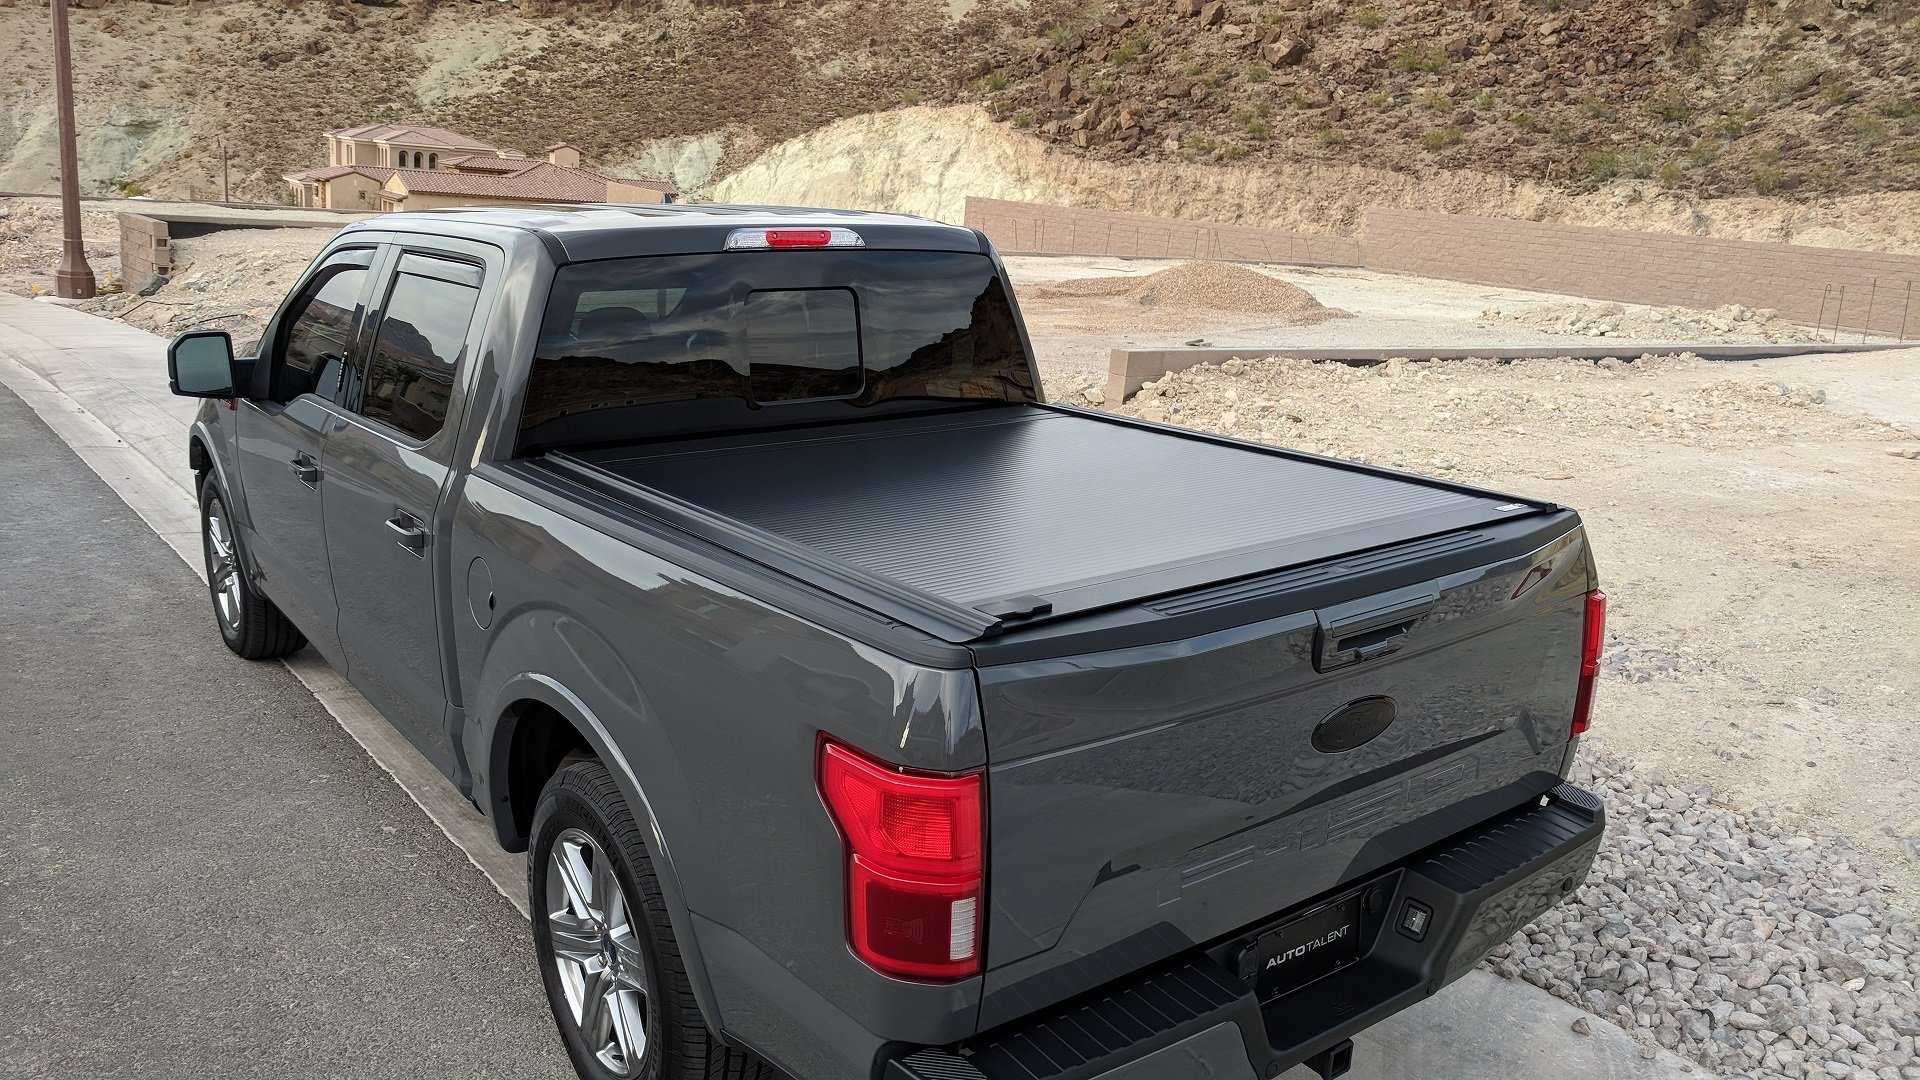 TONNEAU COVERS & WHY YOU NEED ONE! - WULF4X4